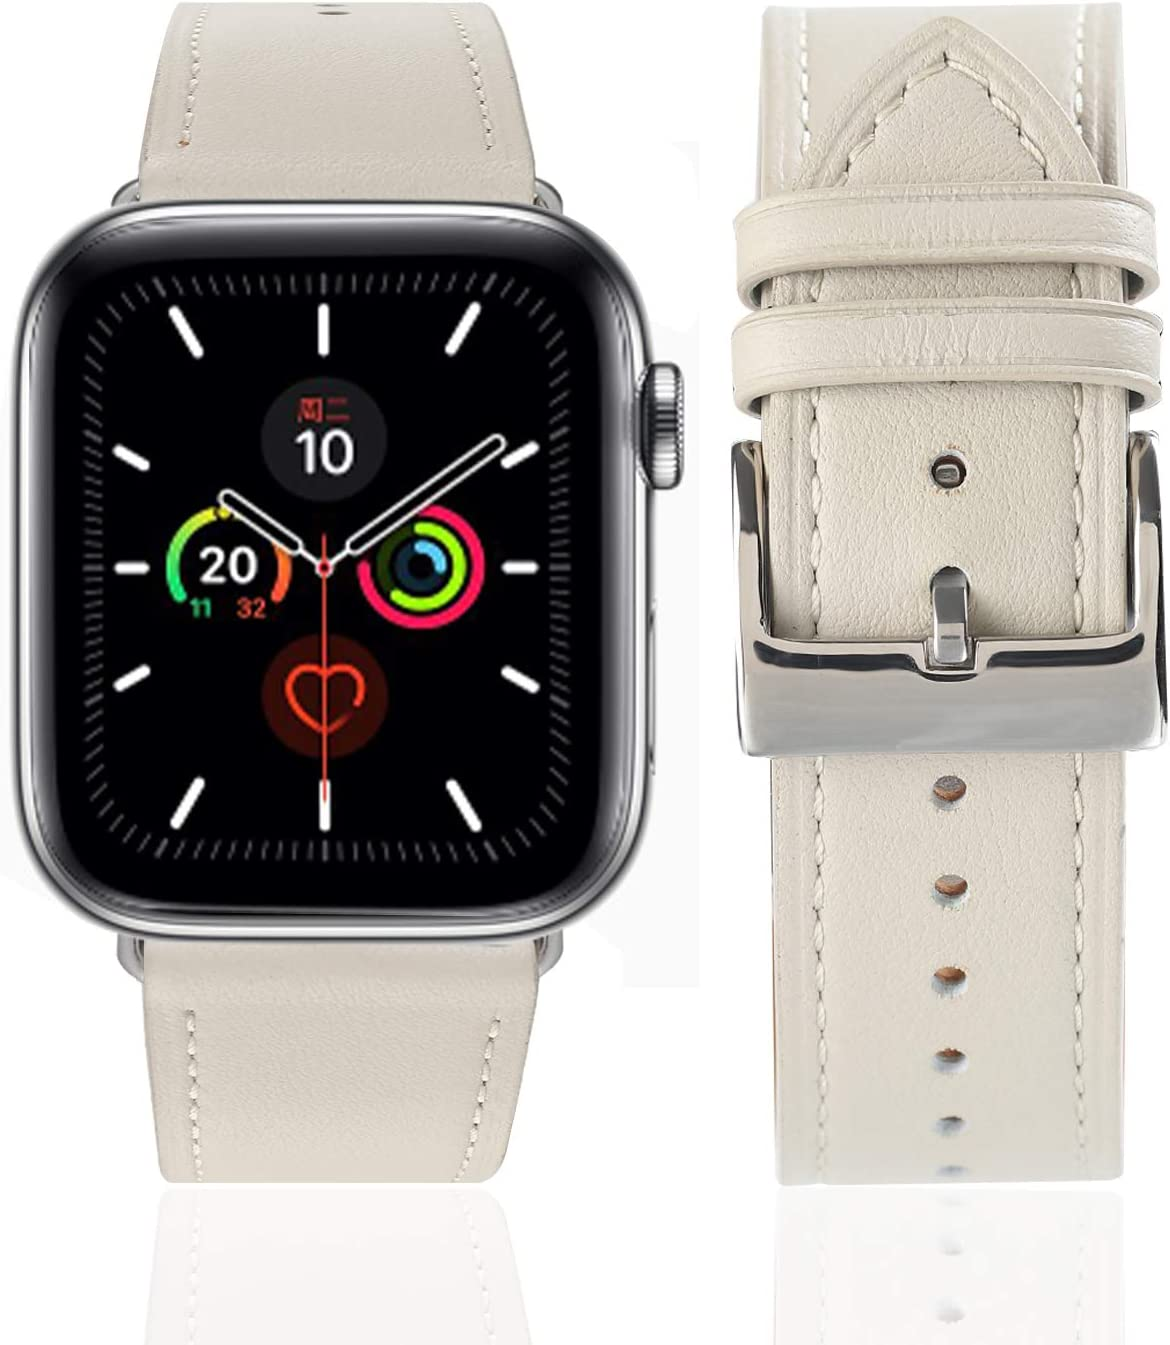 Leather Bands Compatible with Apple Watch Band 38mm 40mm 42mm 44mm, Top Grain Leather Smart Watch Band Compatible for Men Women iWatch Series6/5/4/3/2/1 (Off-white + silver buckle, 42mm 44mm)